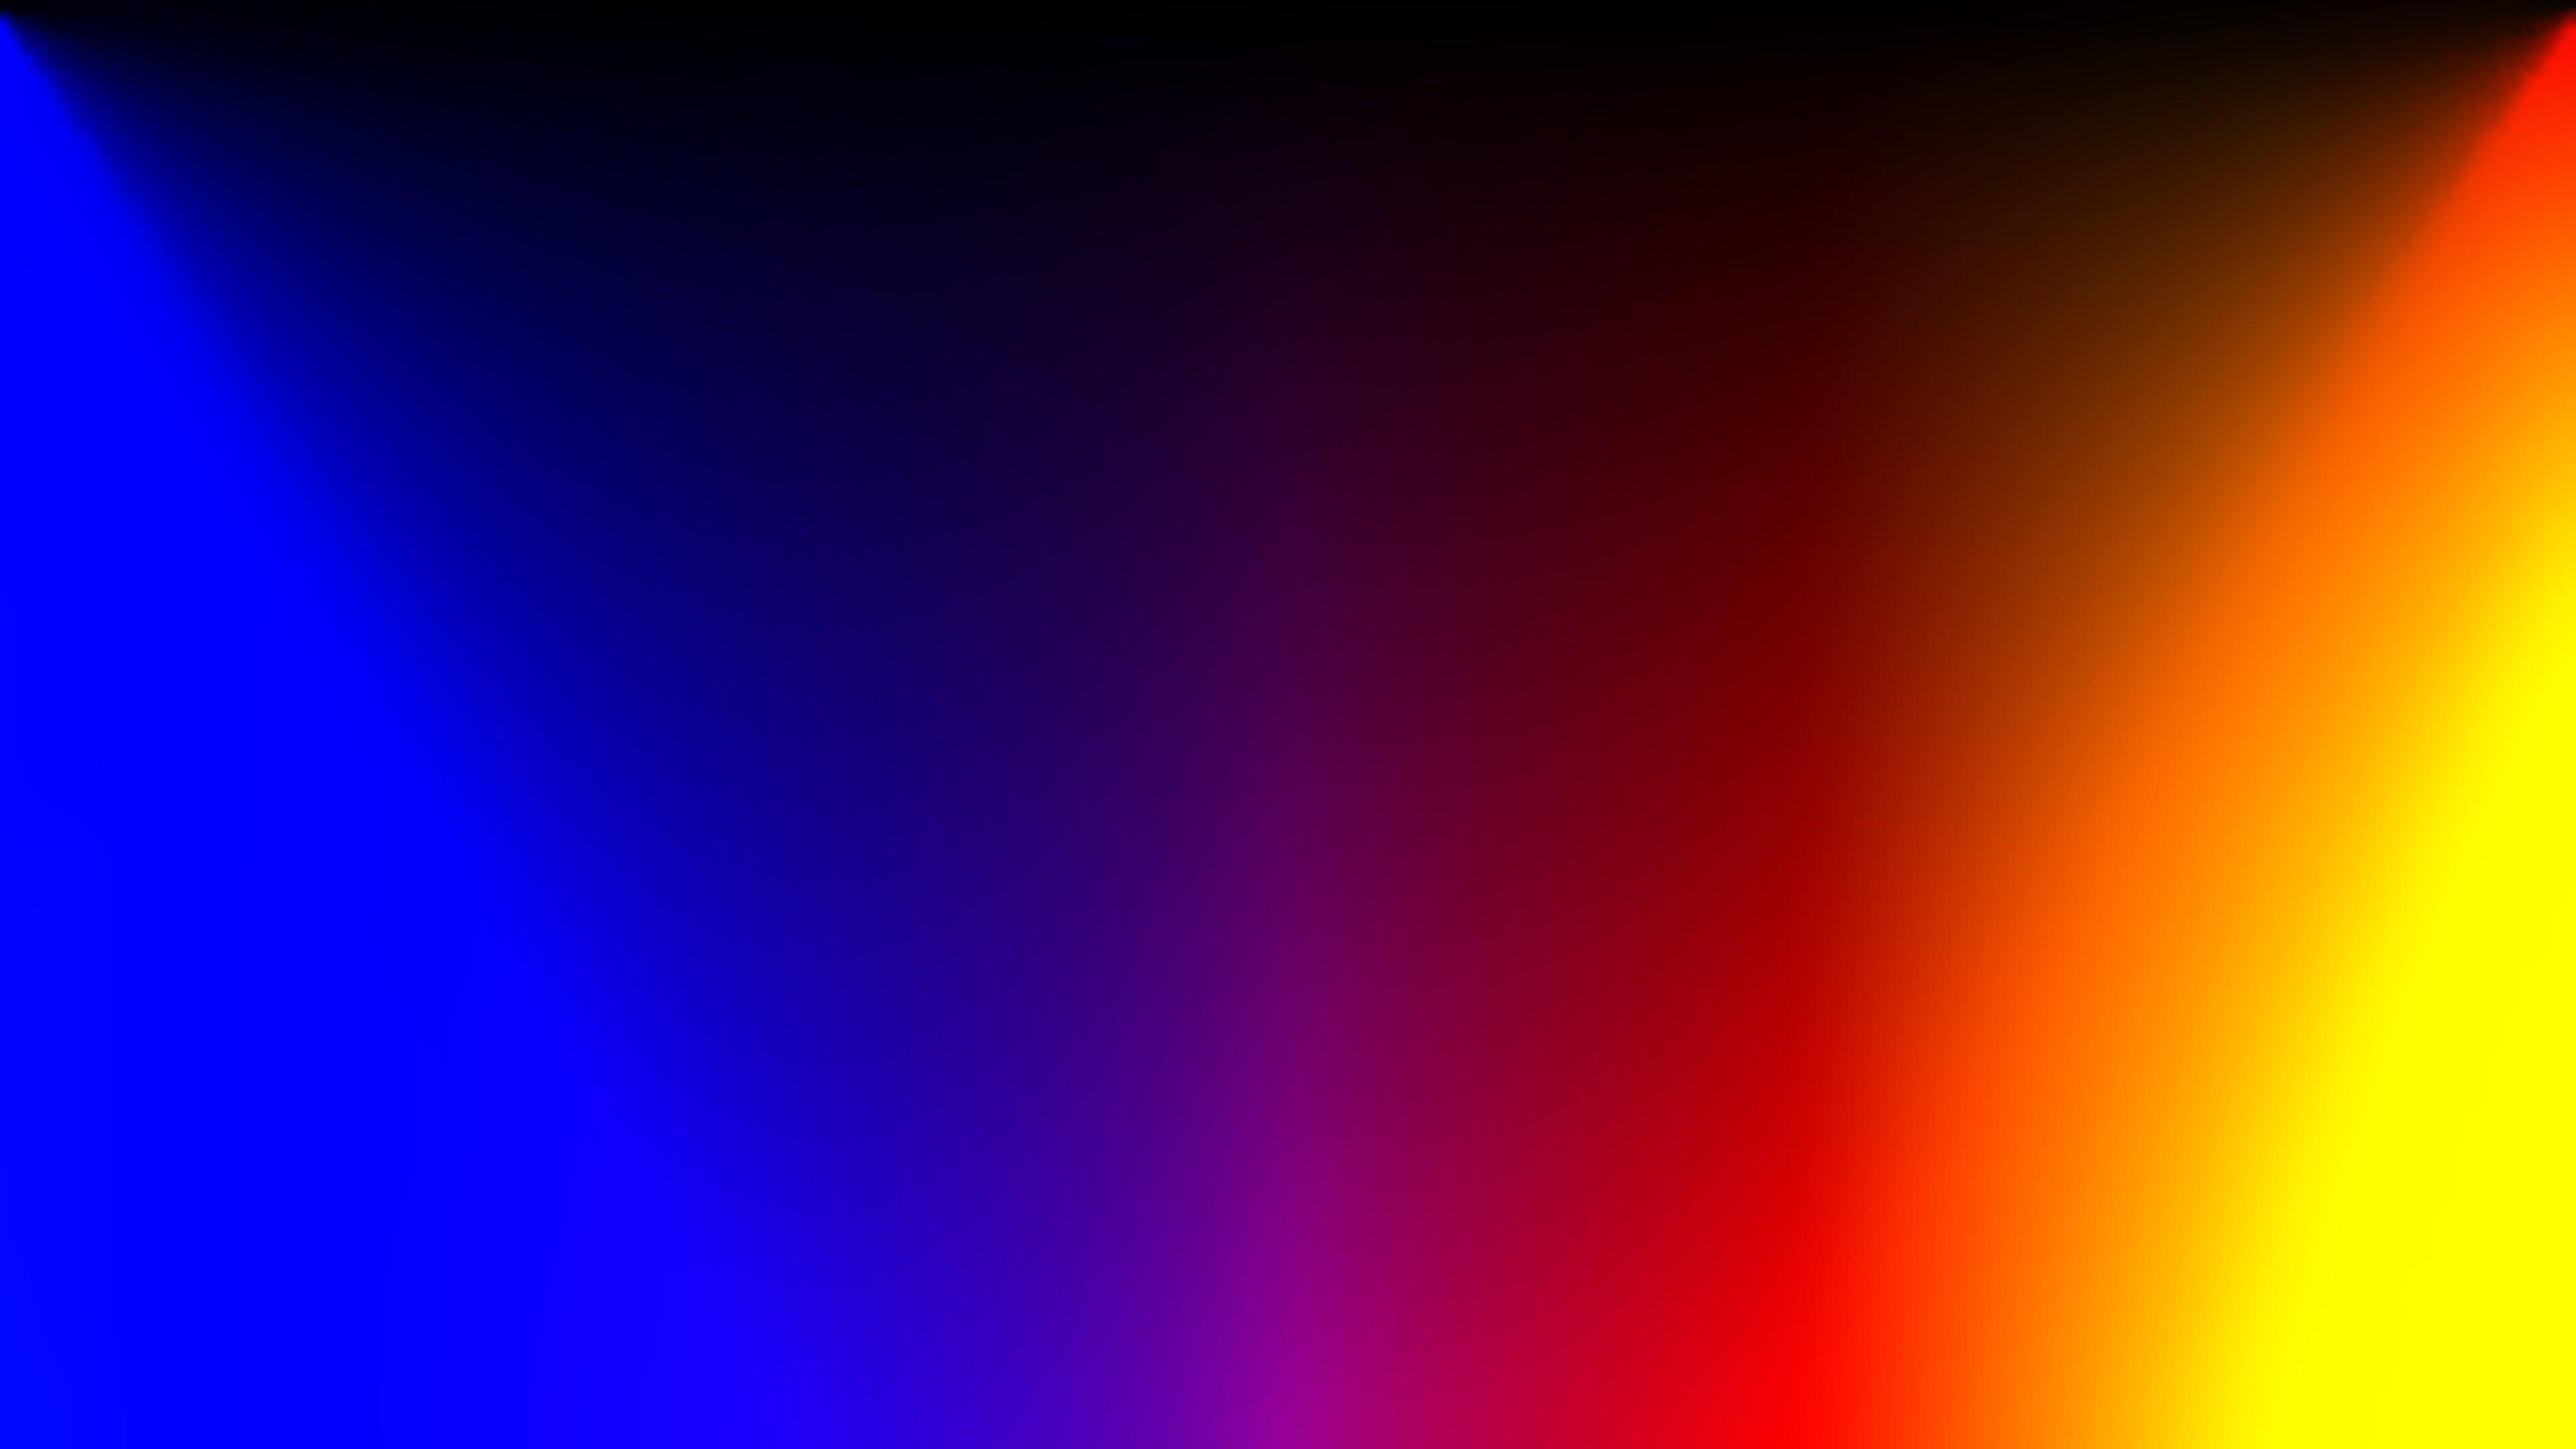 3840x2160 Colors colorful abstract blue purple red orange yellow wallpaper |   | 931714 | WallpaperUP